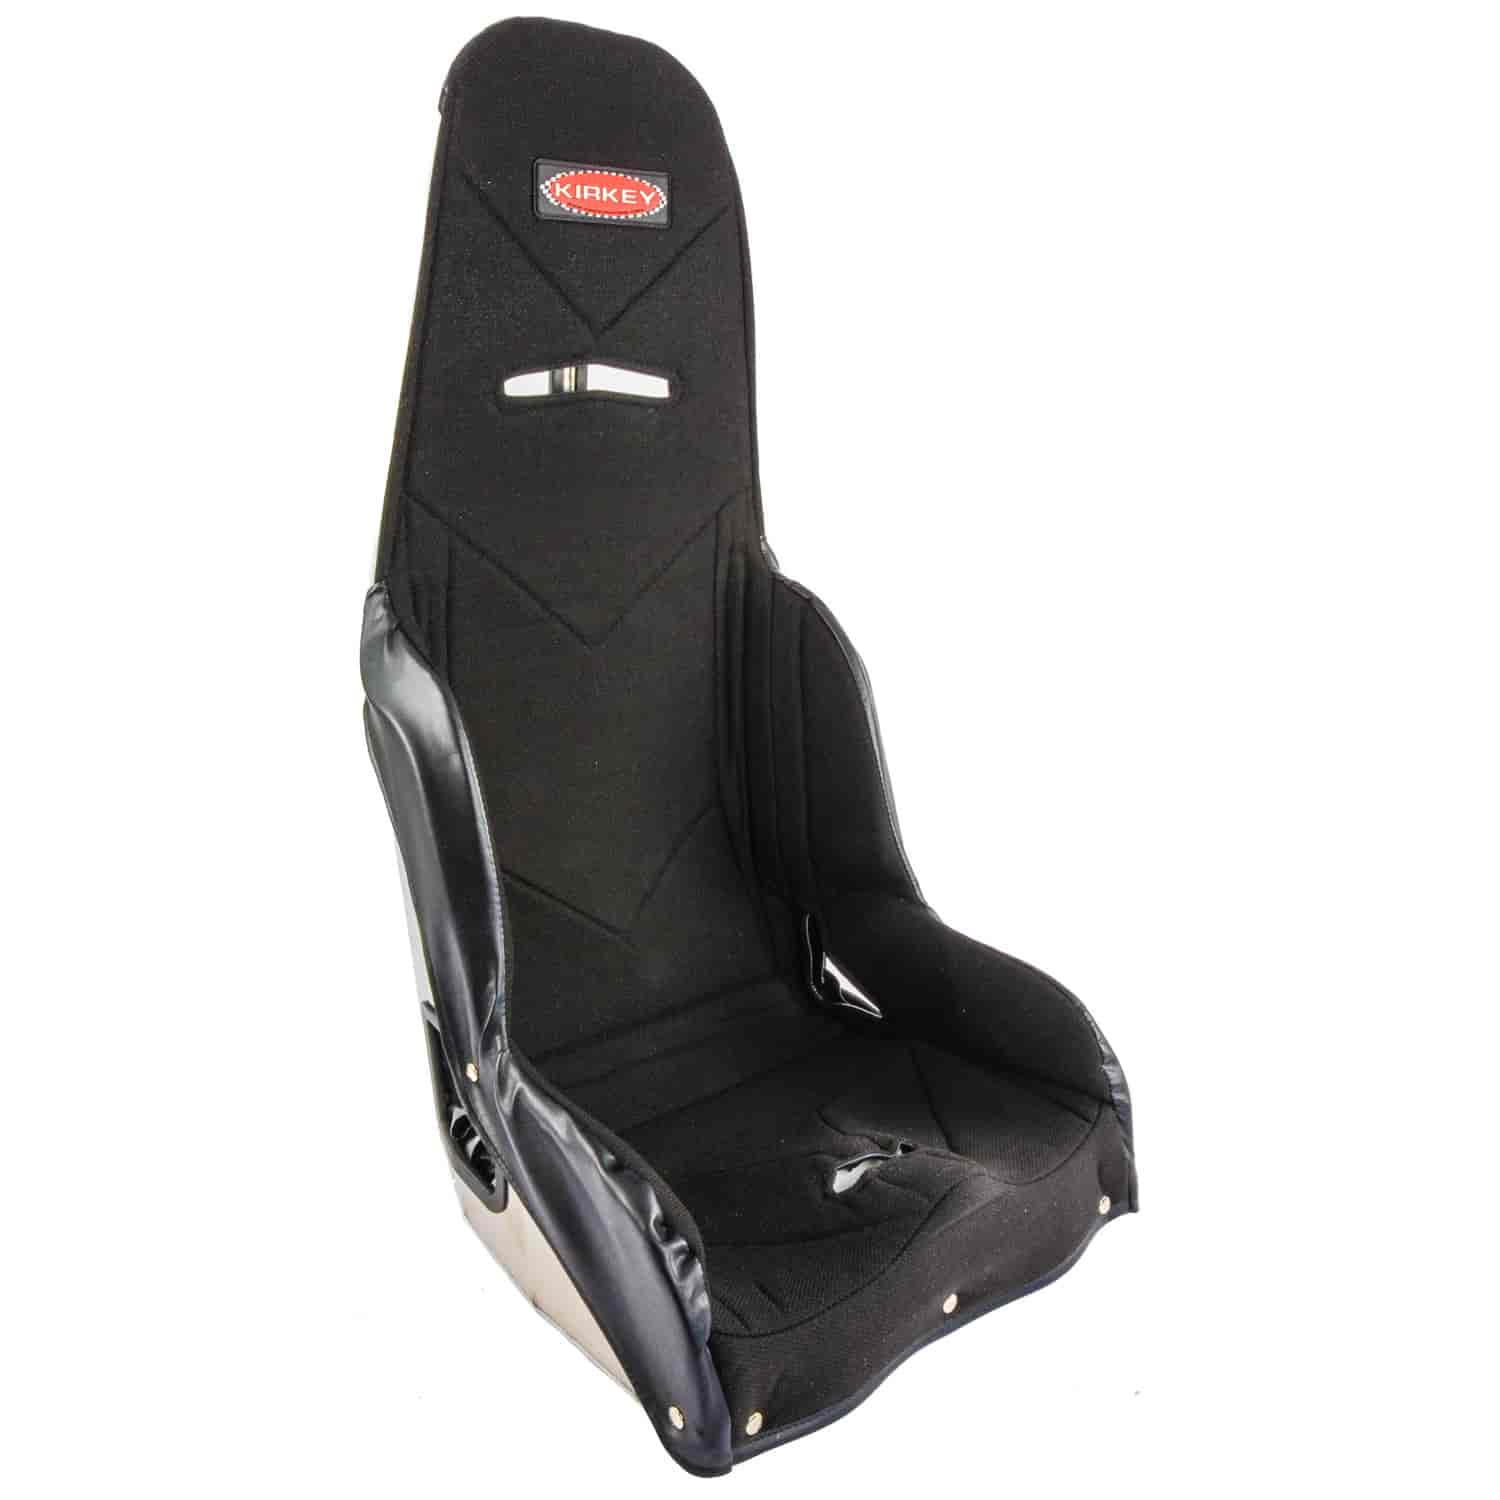 Kirkey 41911 Pro Street Drag Seat Cover 18 Quot Hip Width Jegs